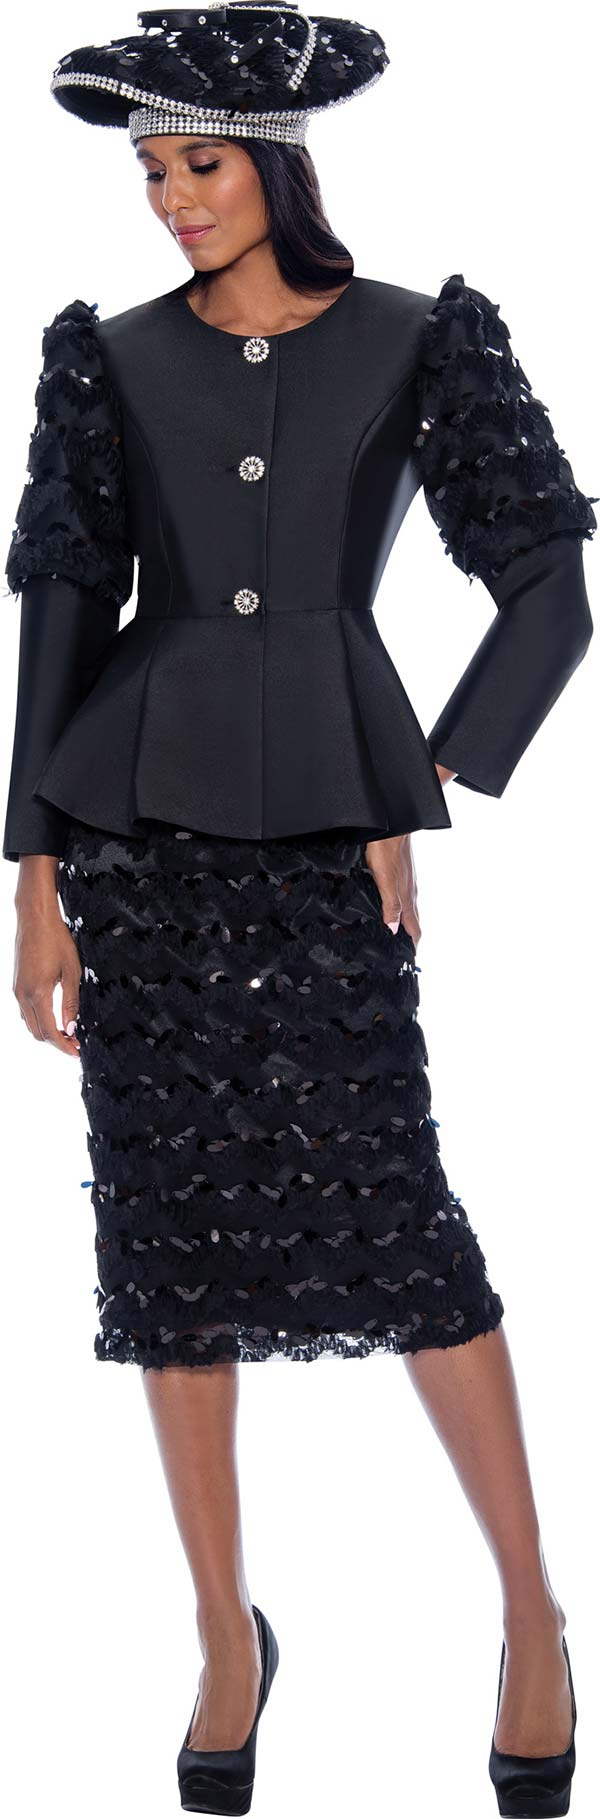 GMI G8172-Black - Peplum Jacket And Skirt Suit Featuring Cut-Out Ruffle Design